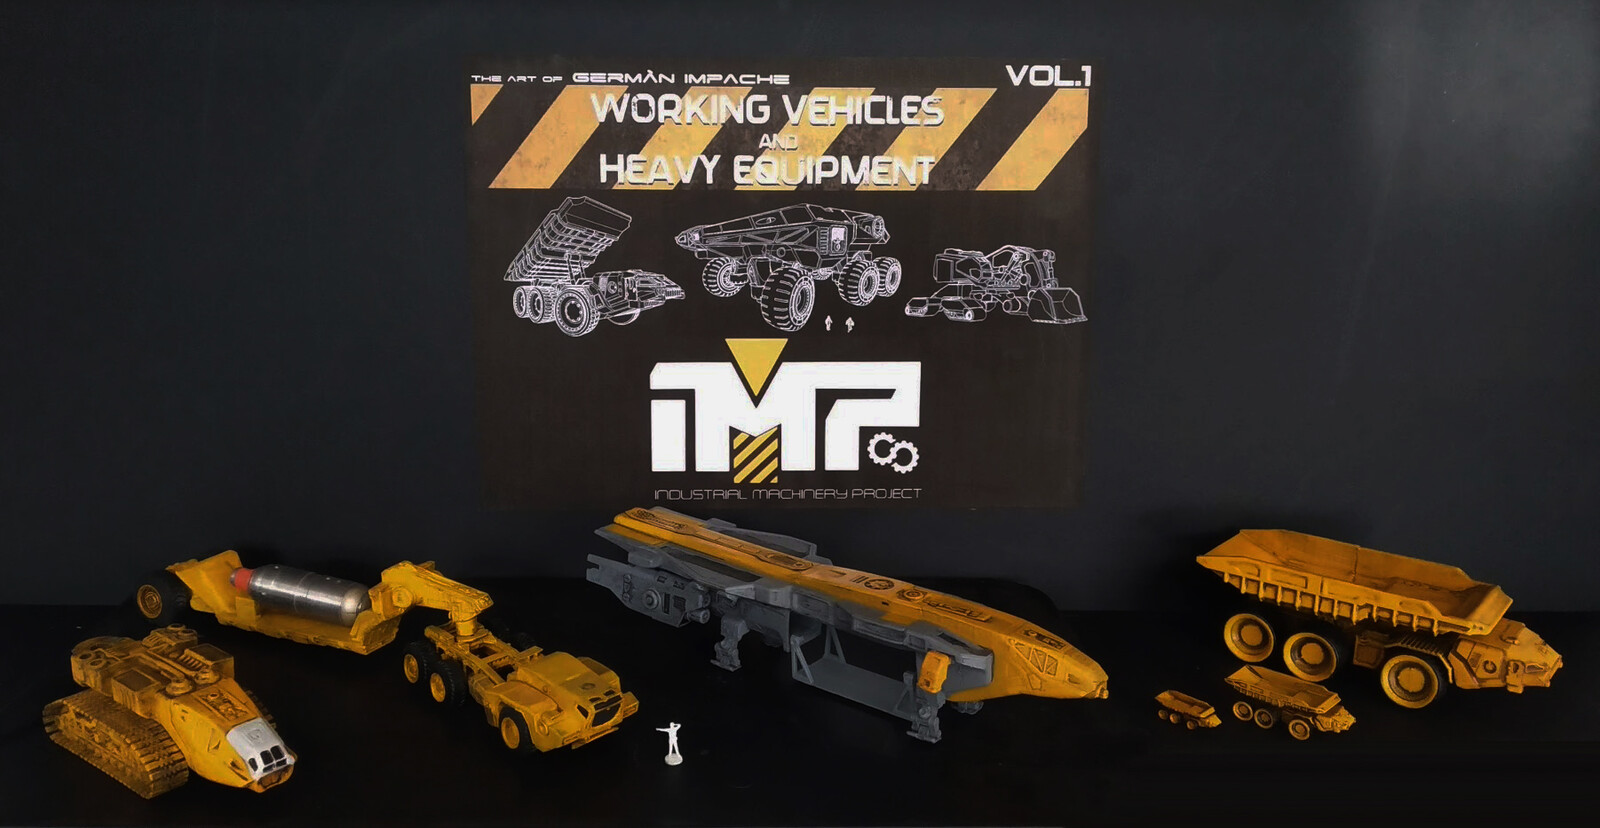 IMP industrial machinery project